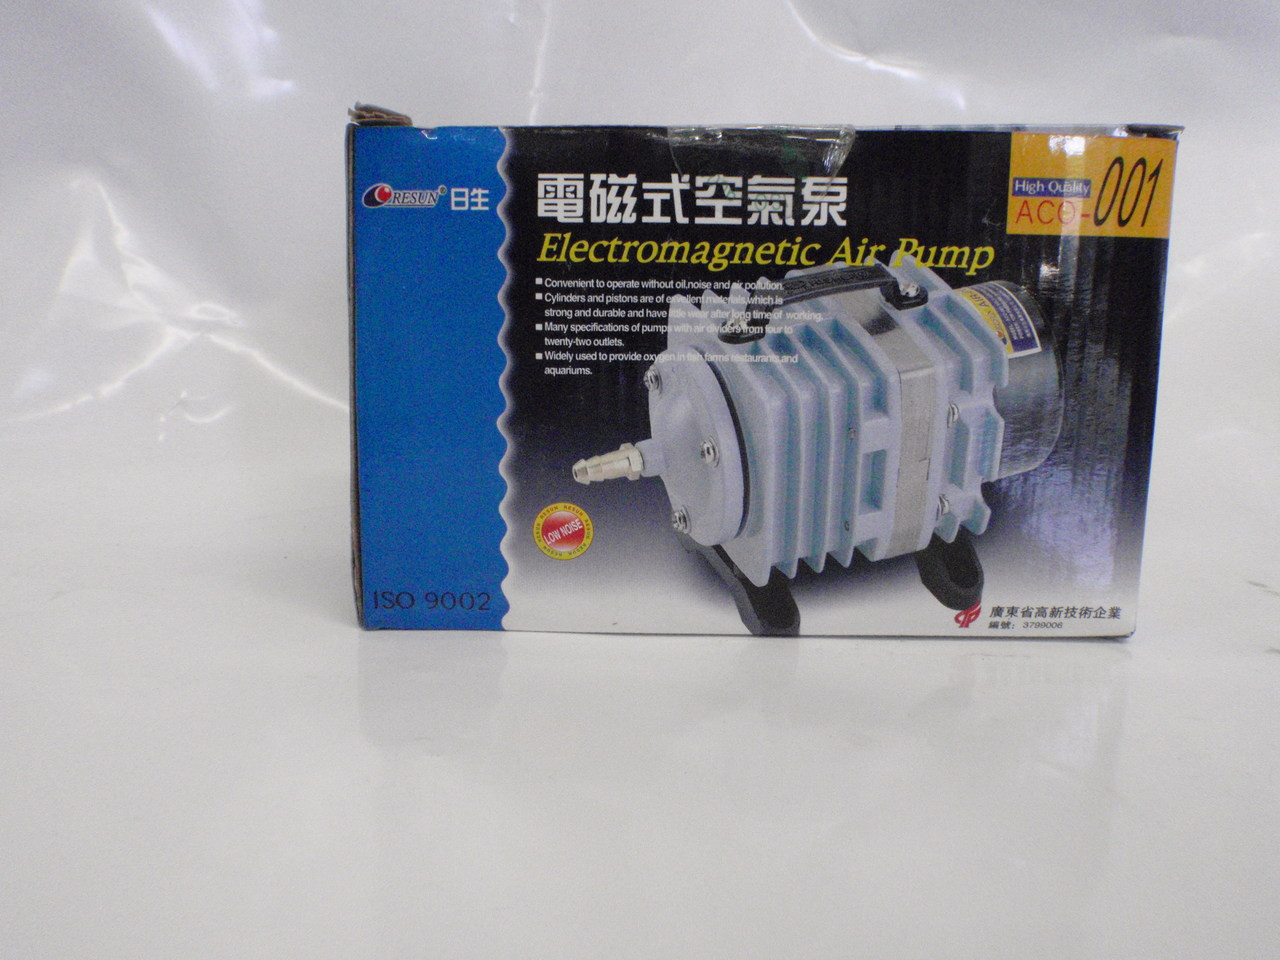 Resun Ac-01 Piston Air Pump